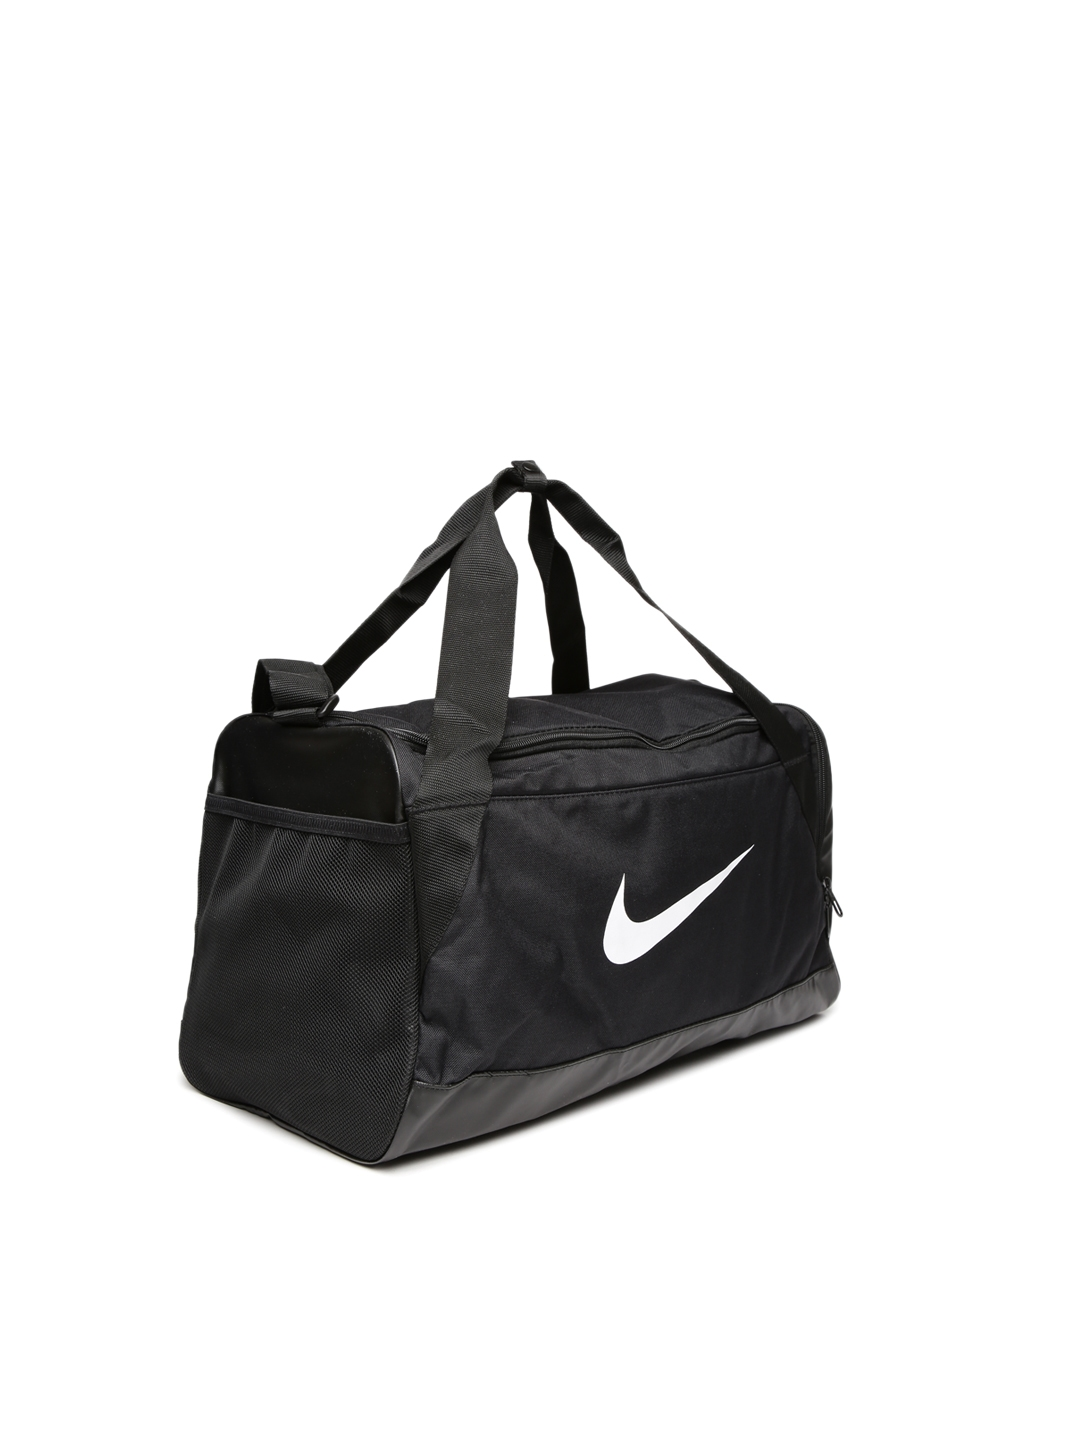 363402e3135b Buy Nike Unisex Black Brasilia Duffel Bag - Duffel Bag for Unisex ...